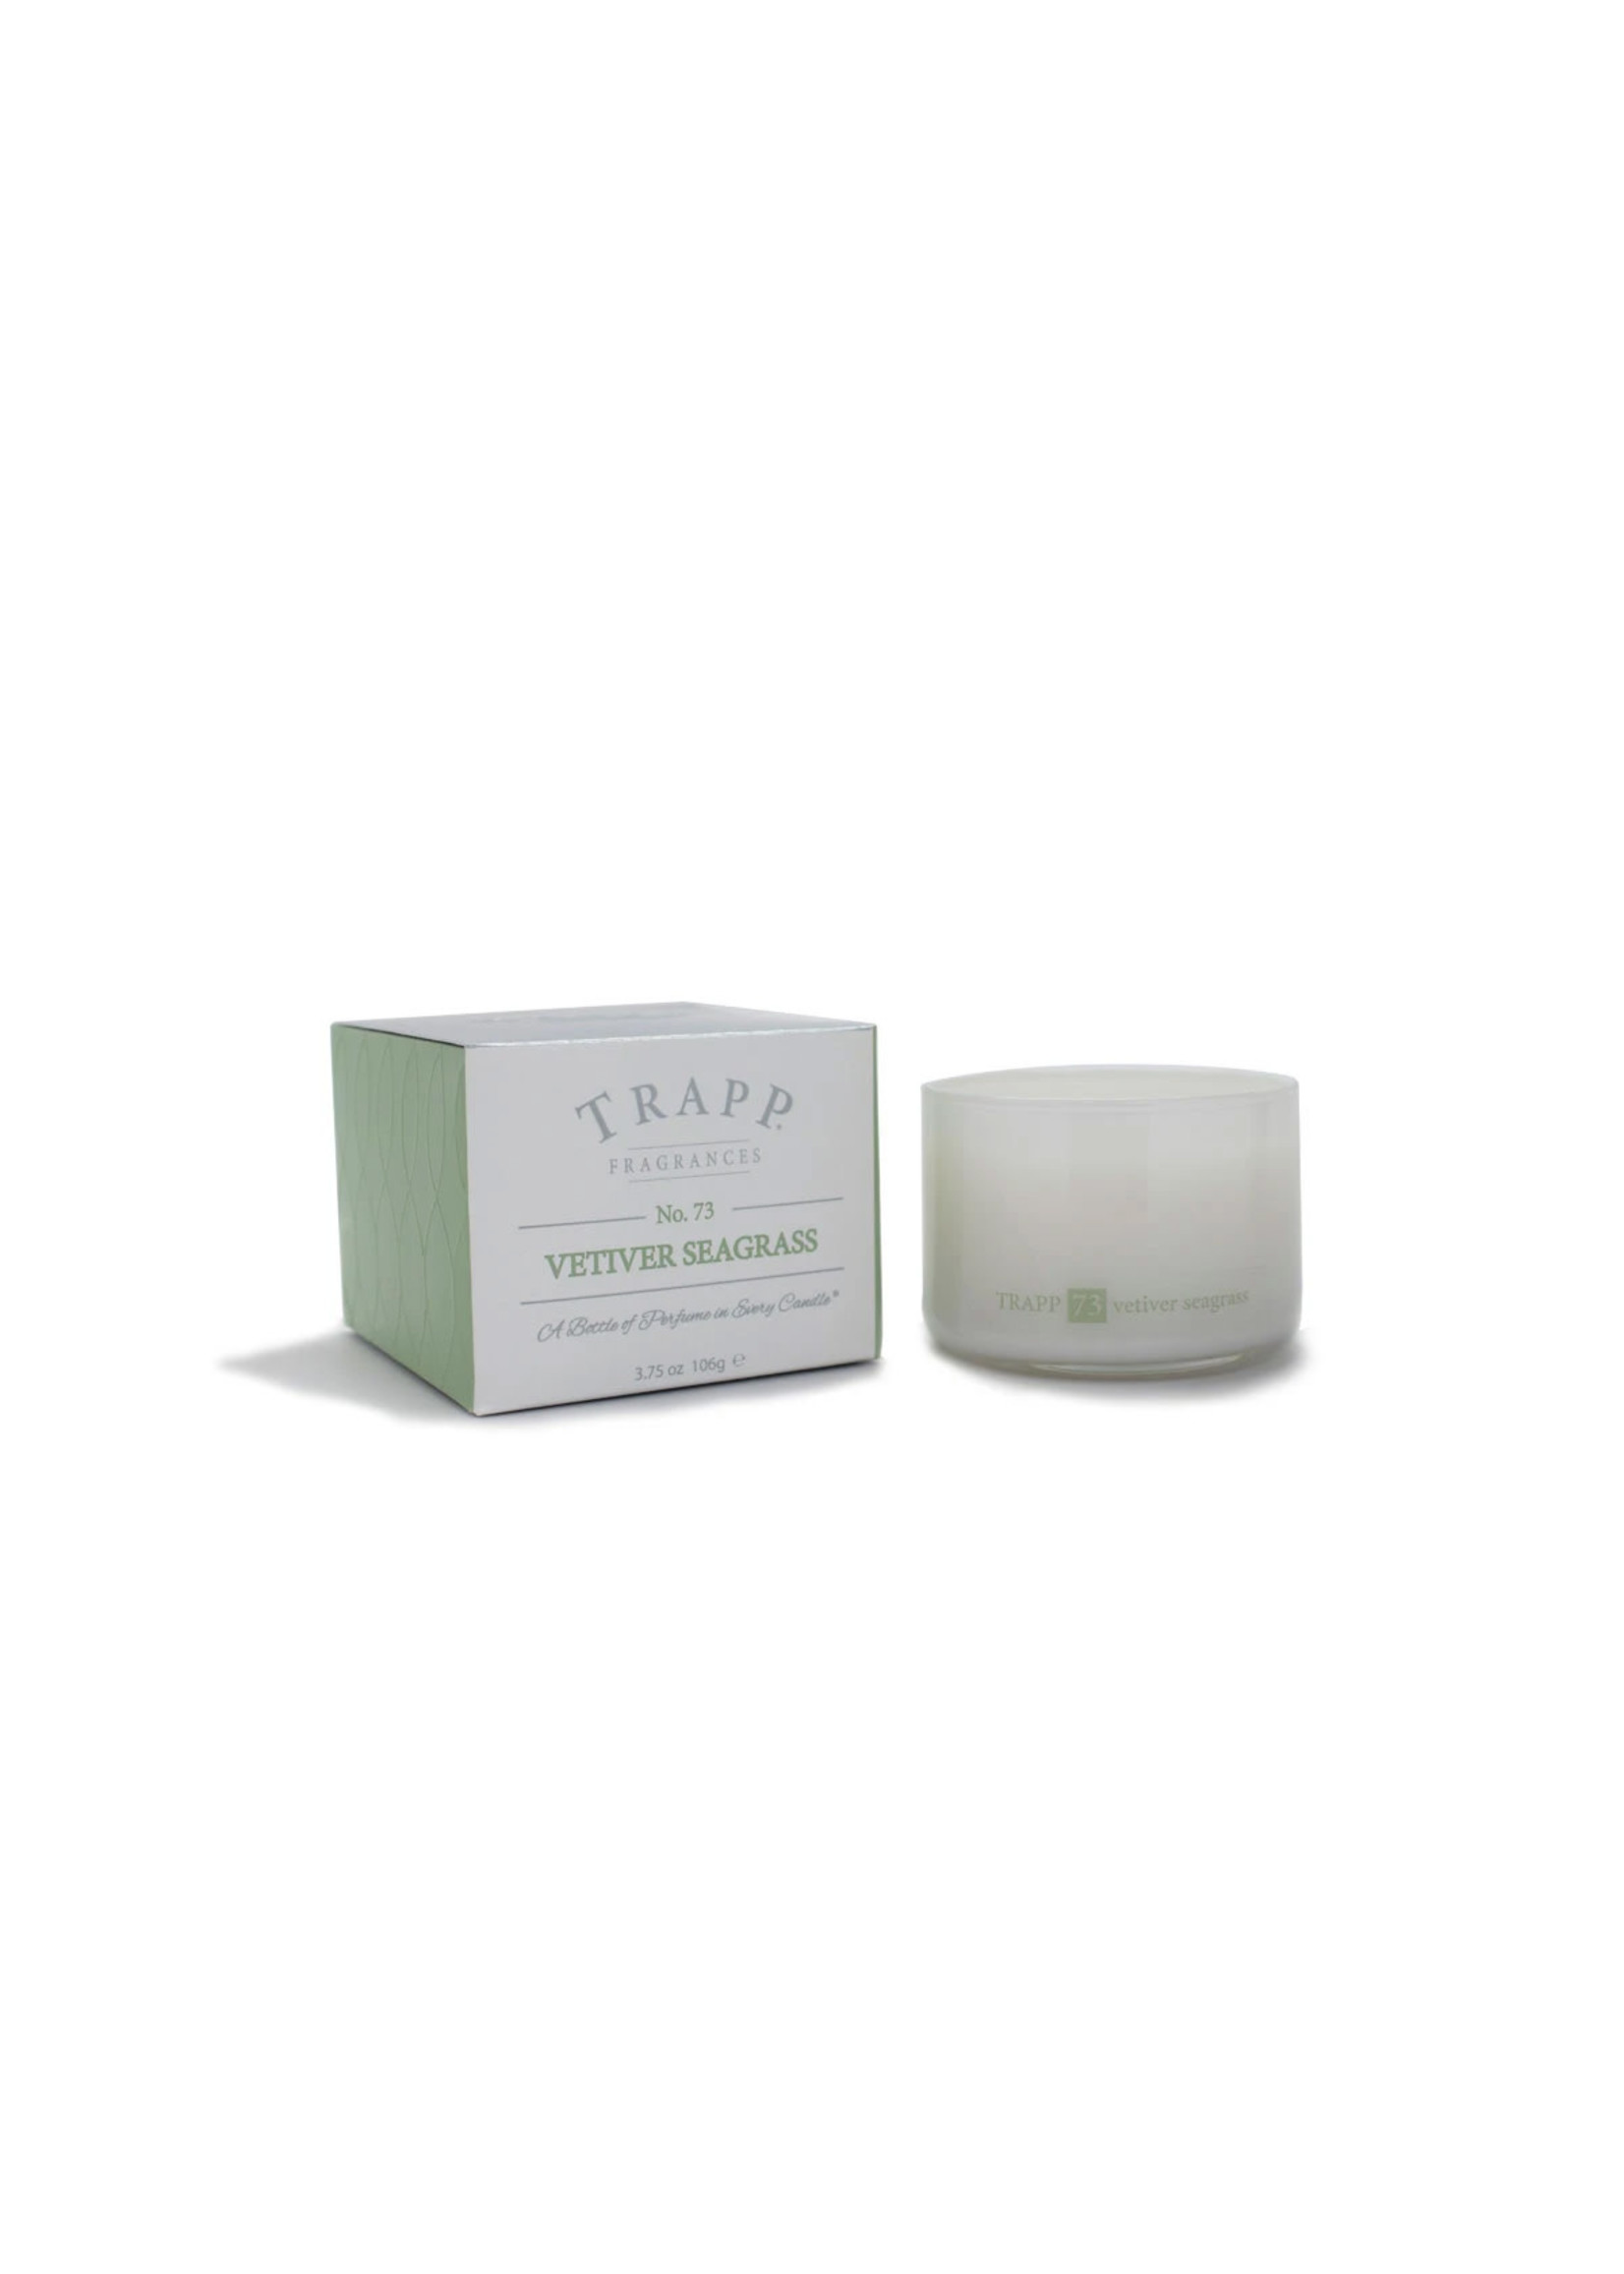 Trapp Candles Ambiance Collection - No. 73 Vetiver Seagrass - 3.75 oz. Poured Candle